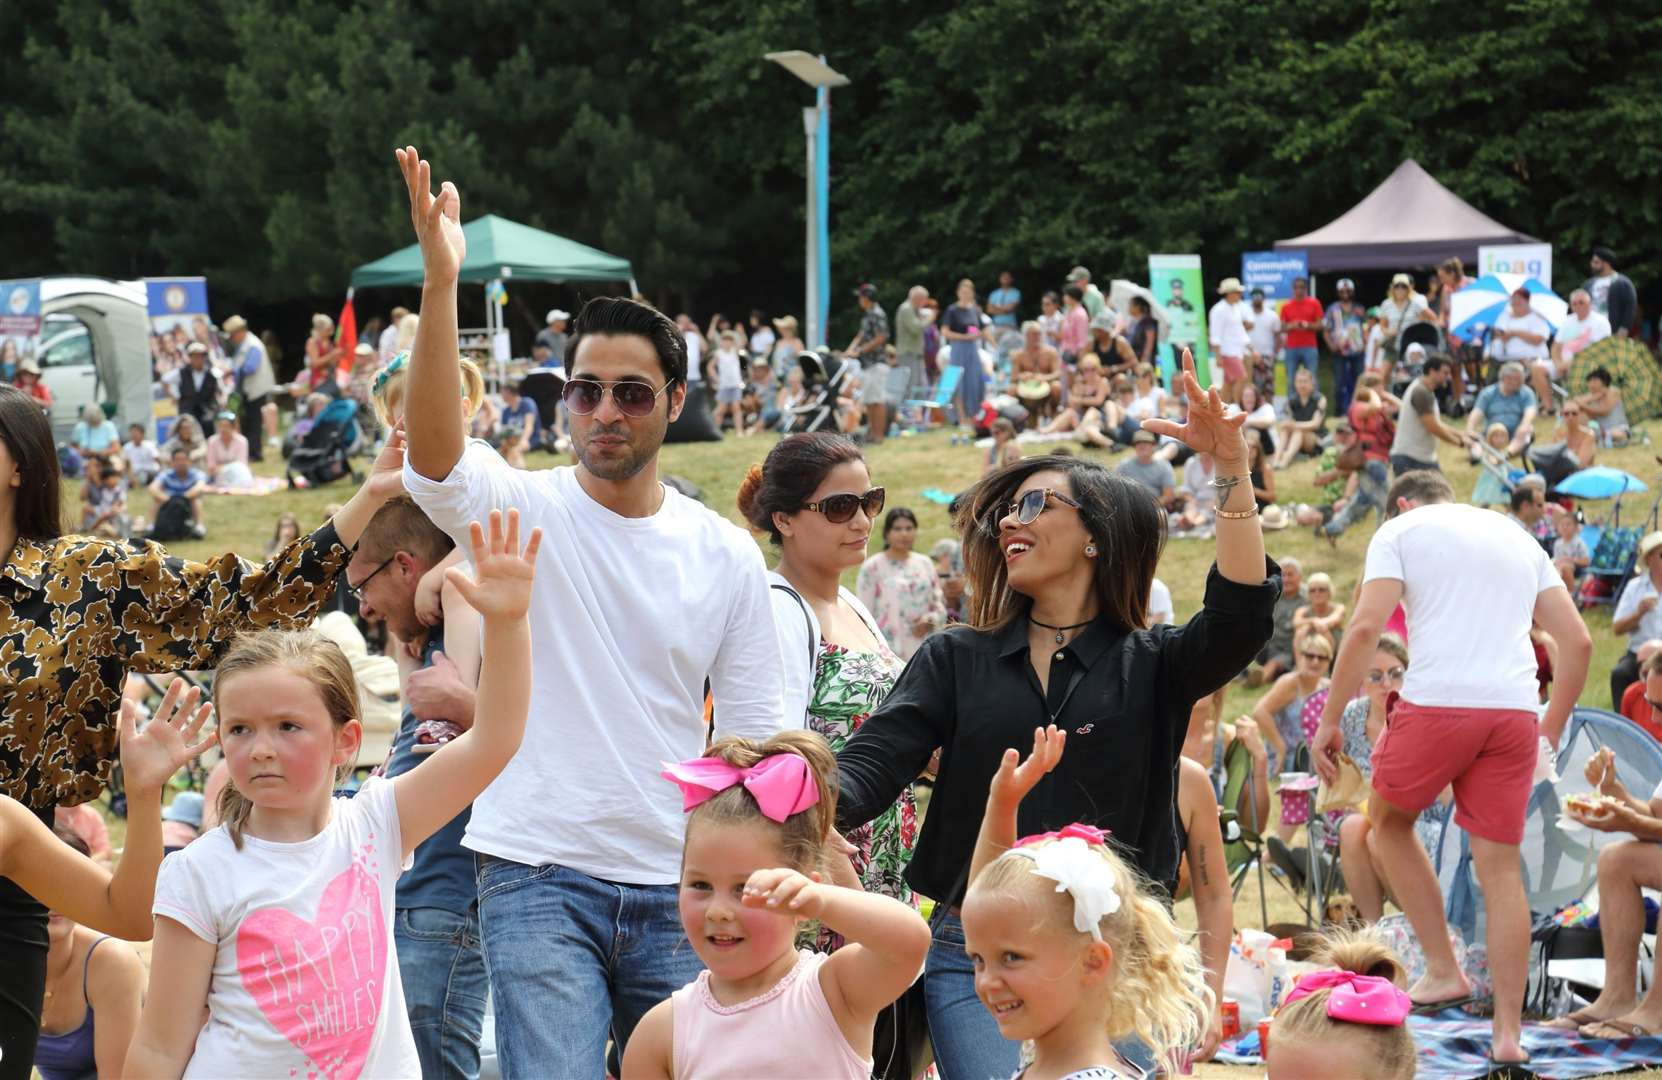 Maidstone Mela will be in Whatman Park